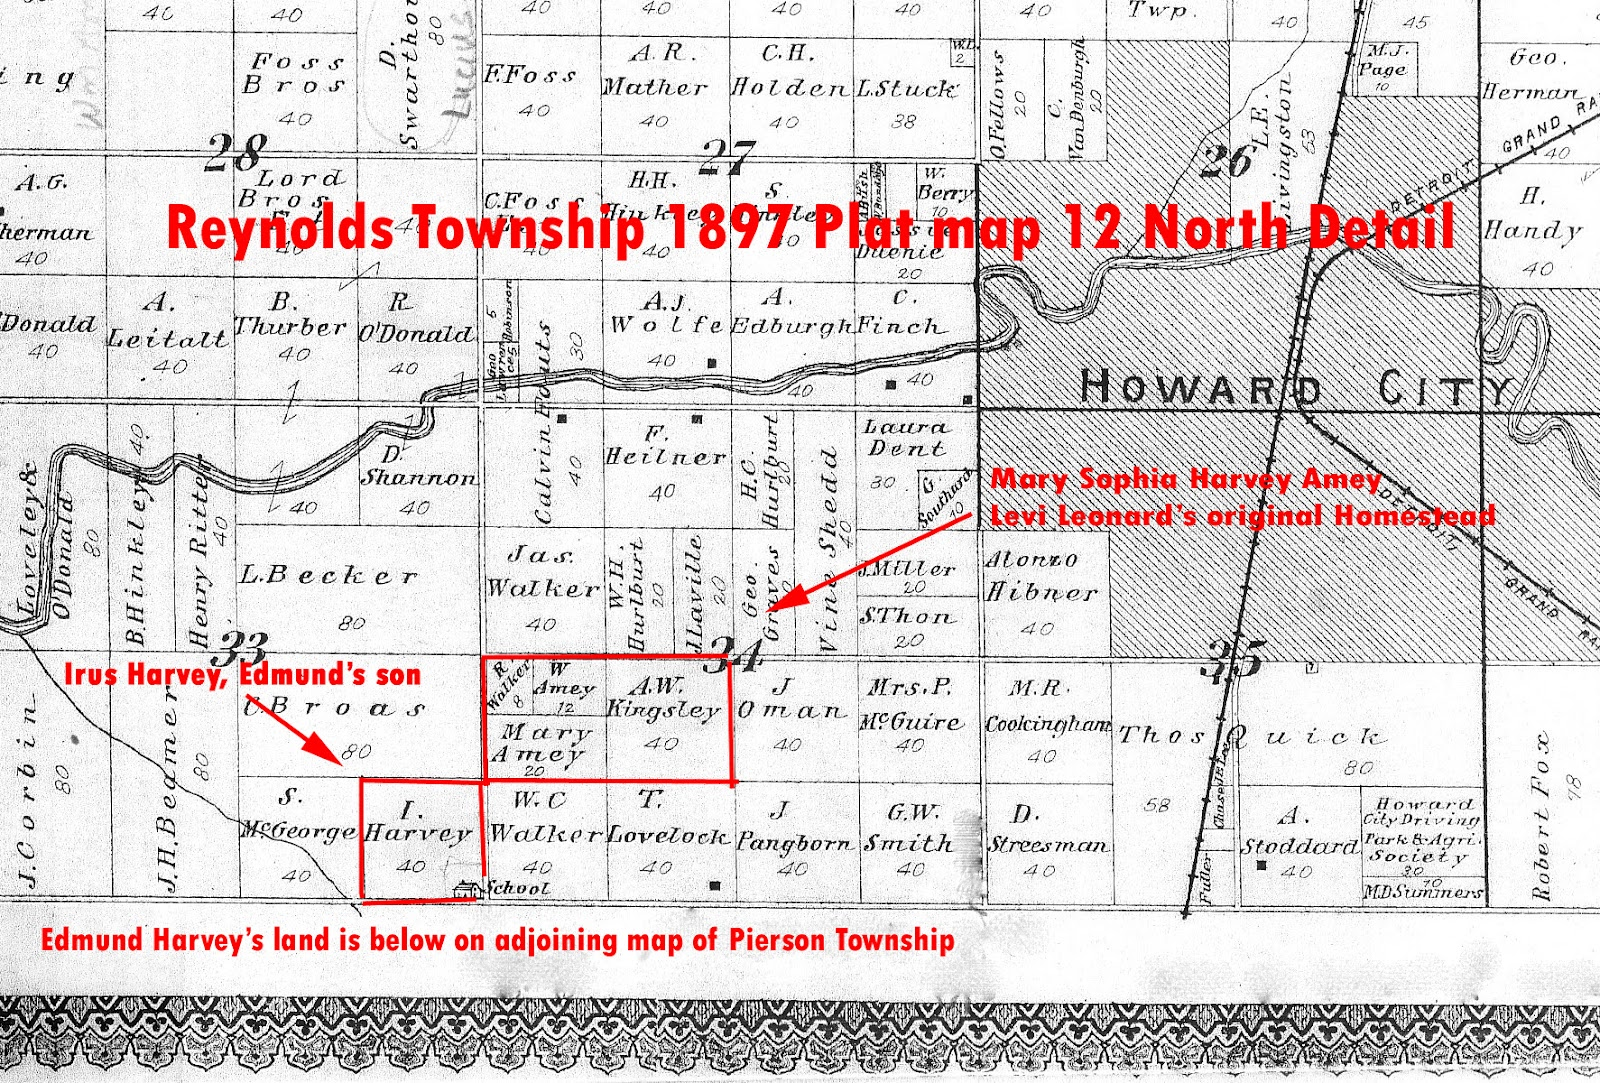 an 1897 plat of the reynolds township shows the land levi gave to mary and archie mary has given or sold some of it to her husband william amey